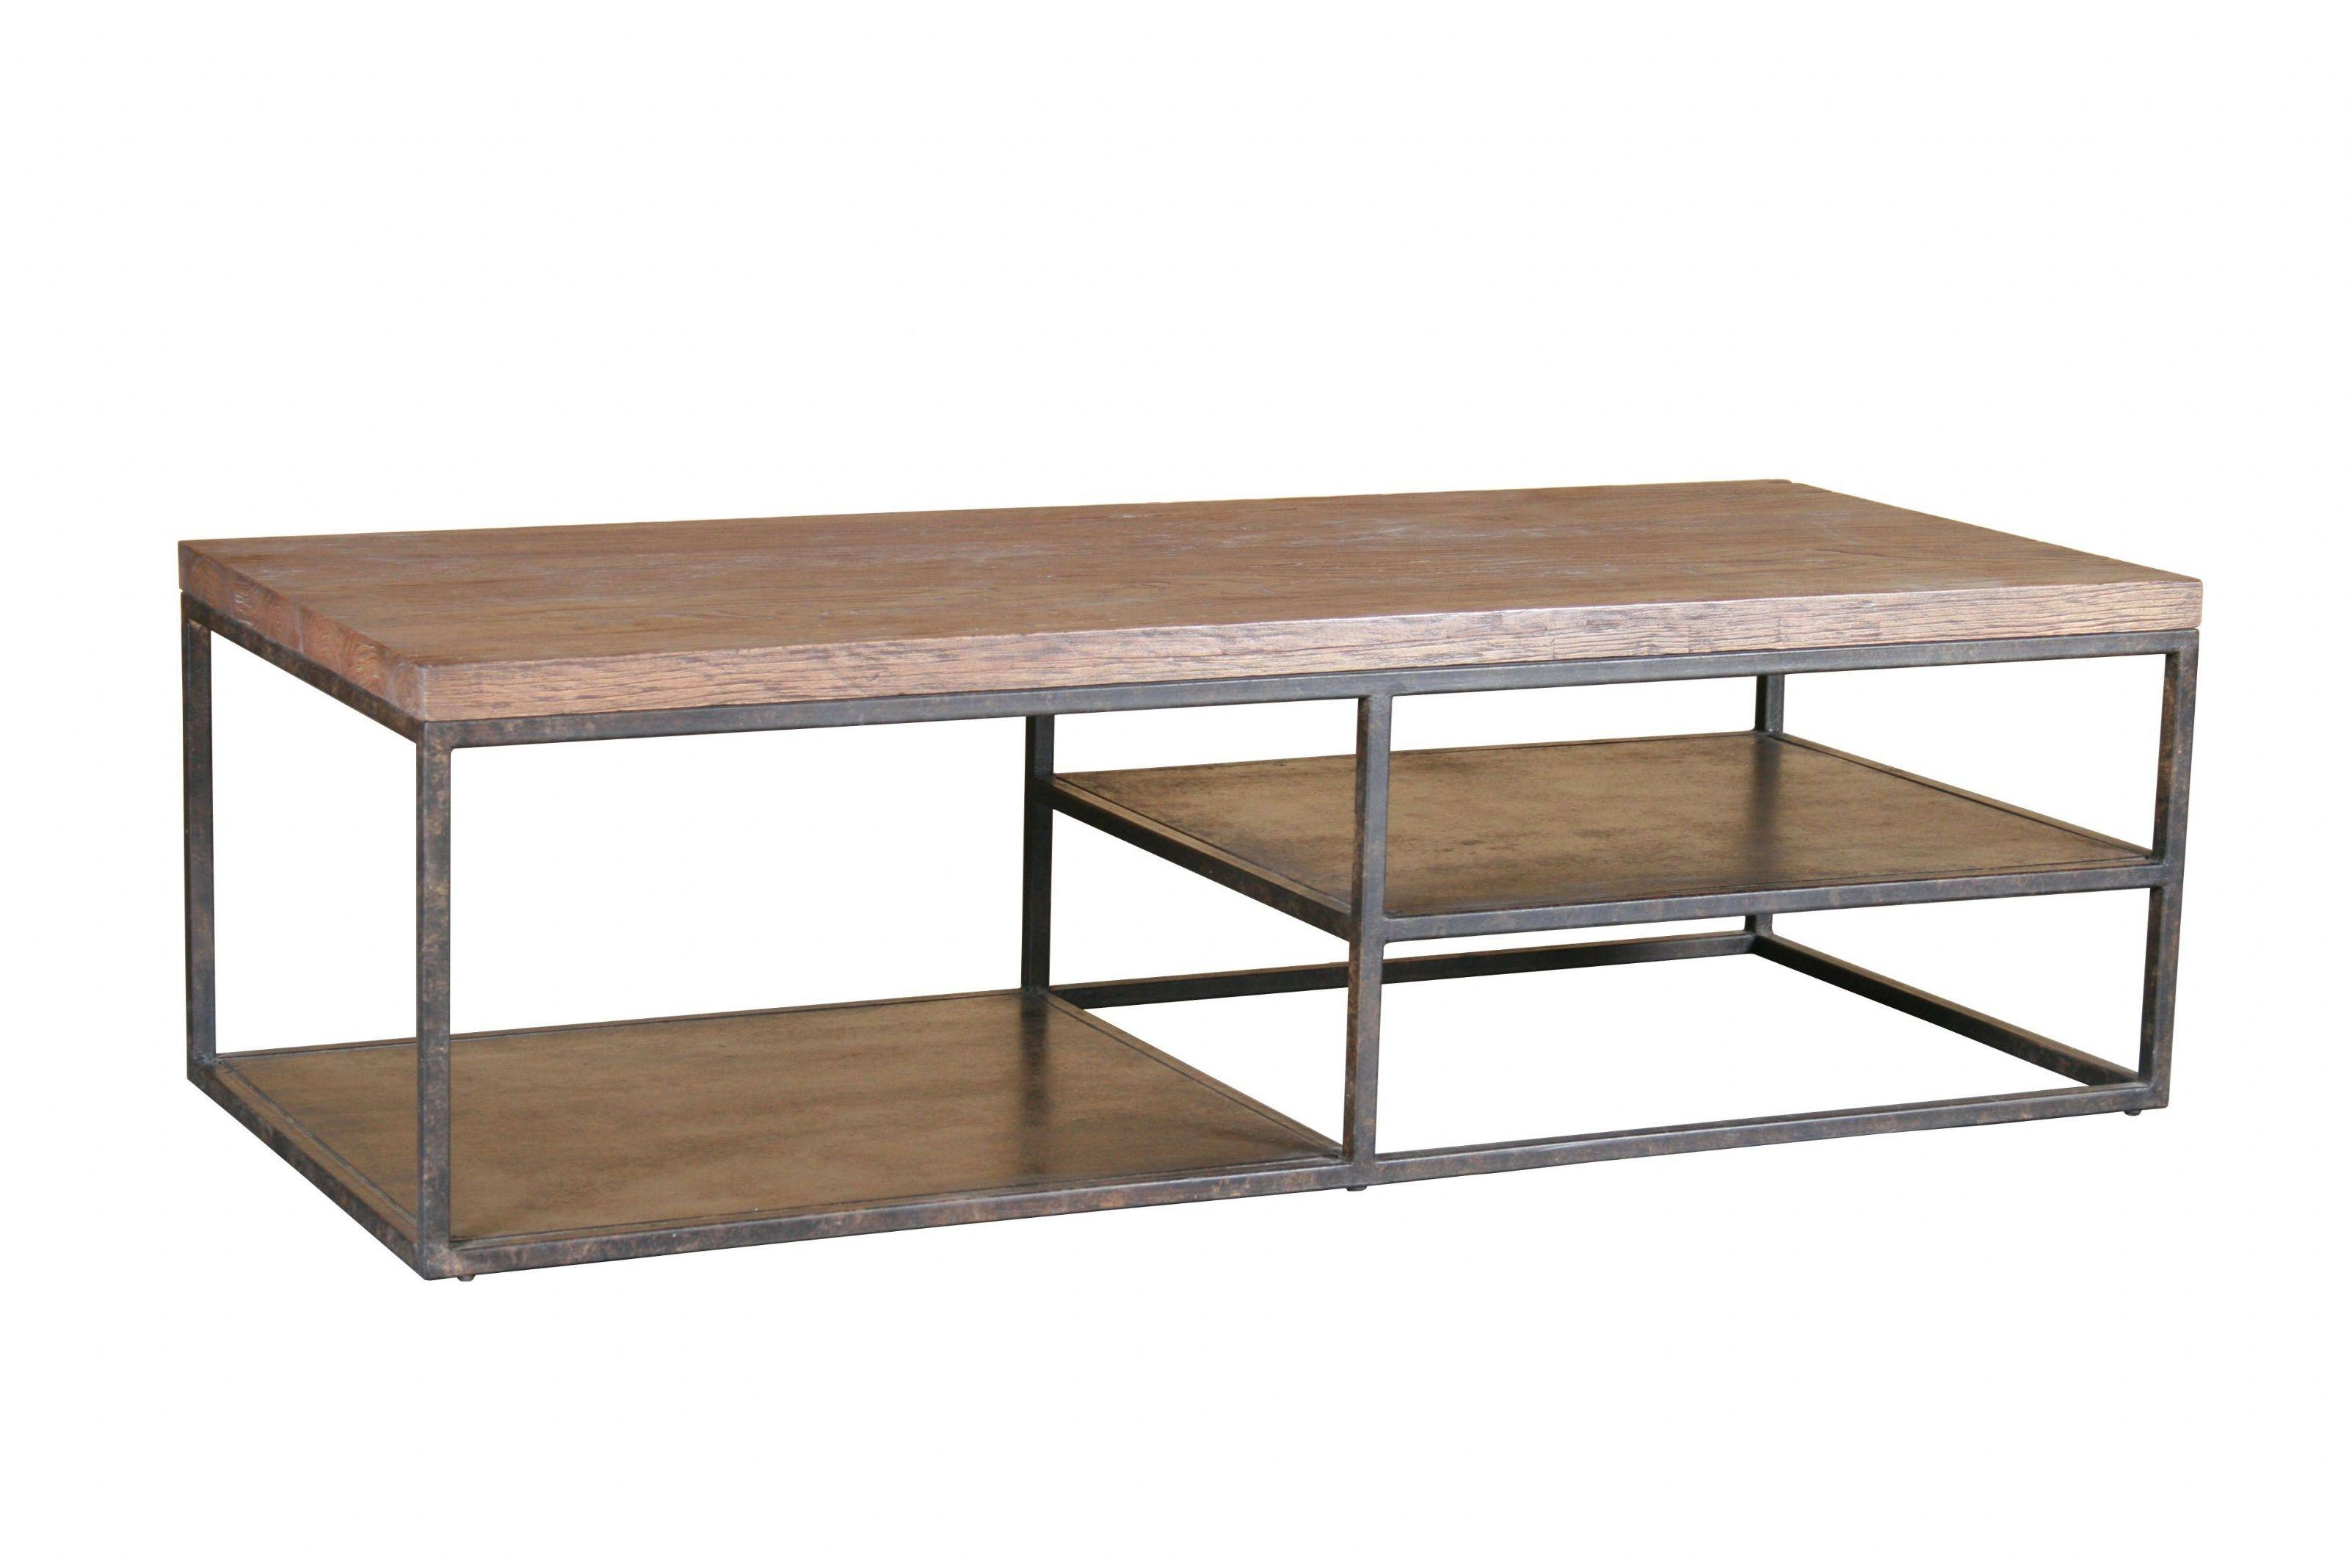 Coffee Tables Ideas: Awesome Iron And Wood Coffee Table Iron within Steel and Wood Coffee Tables (Image 5 of 15)